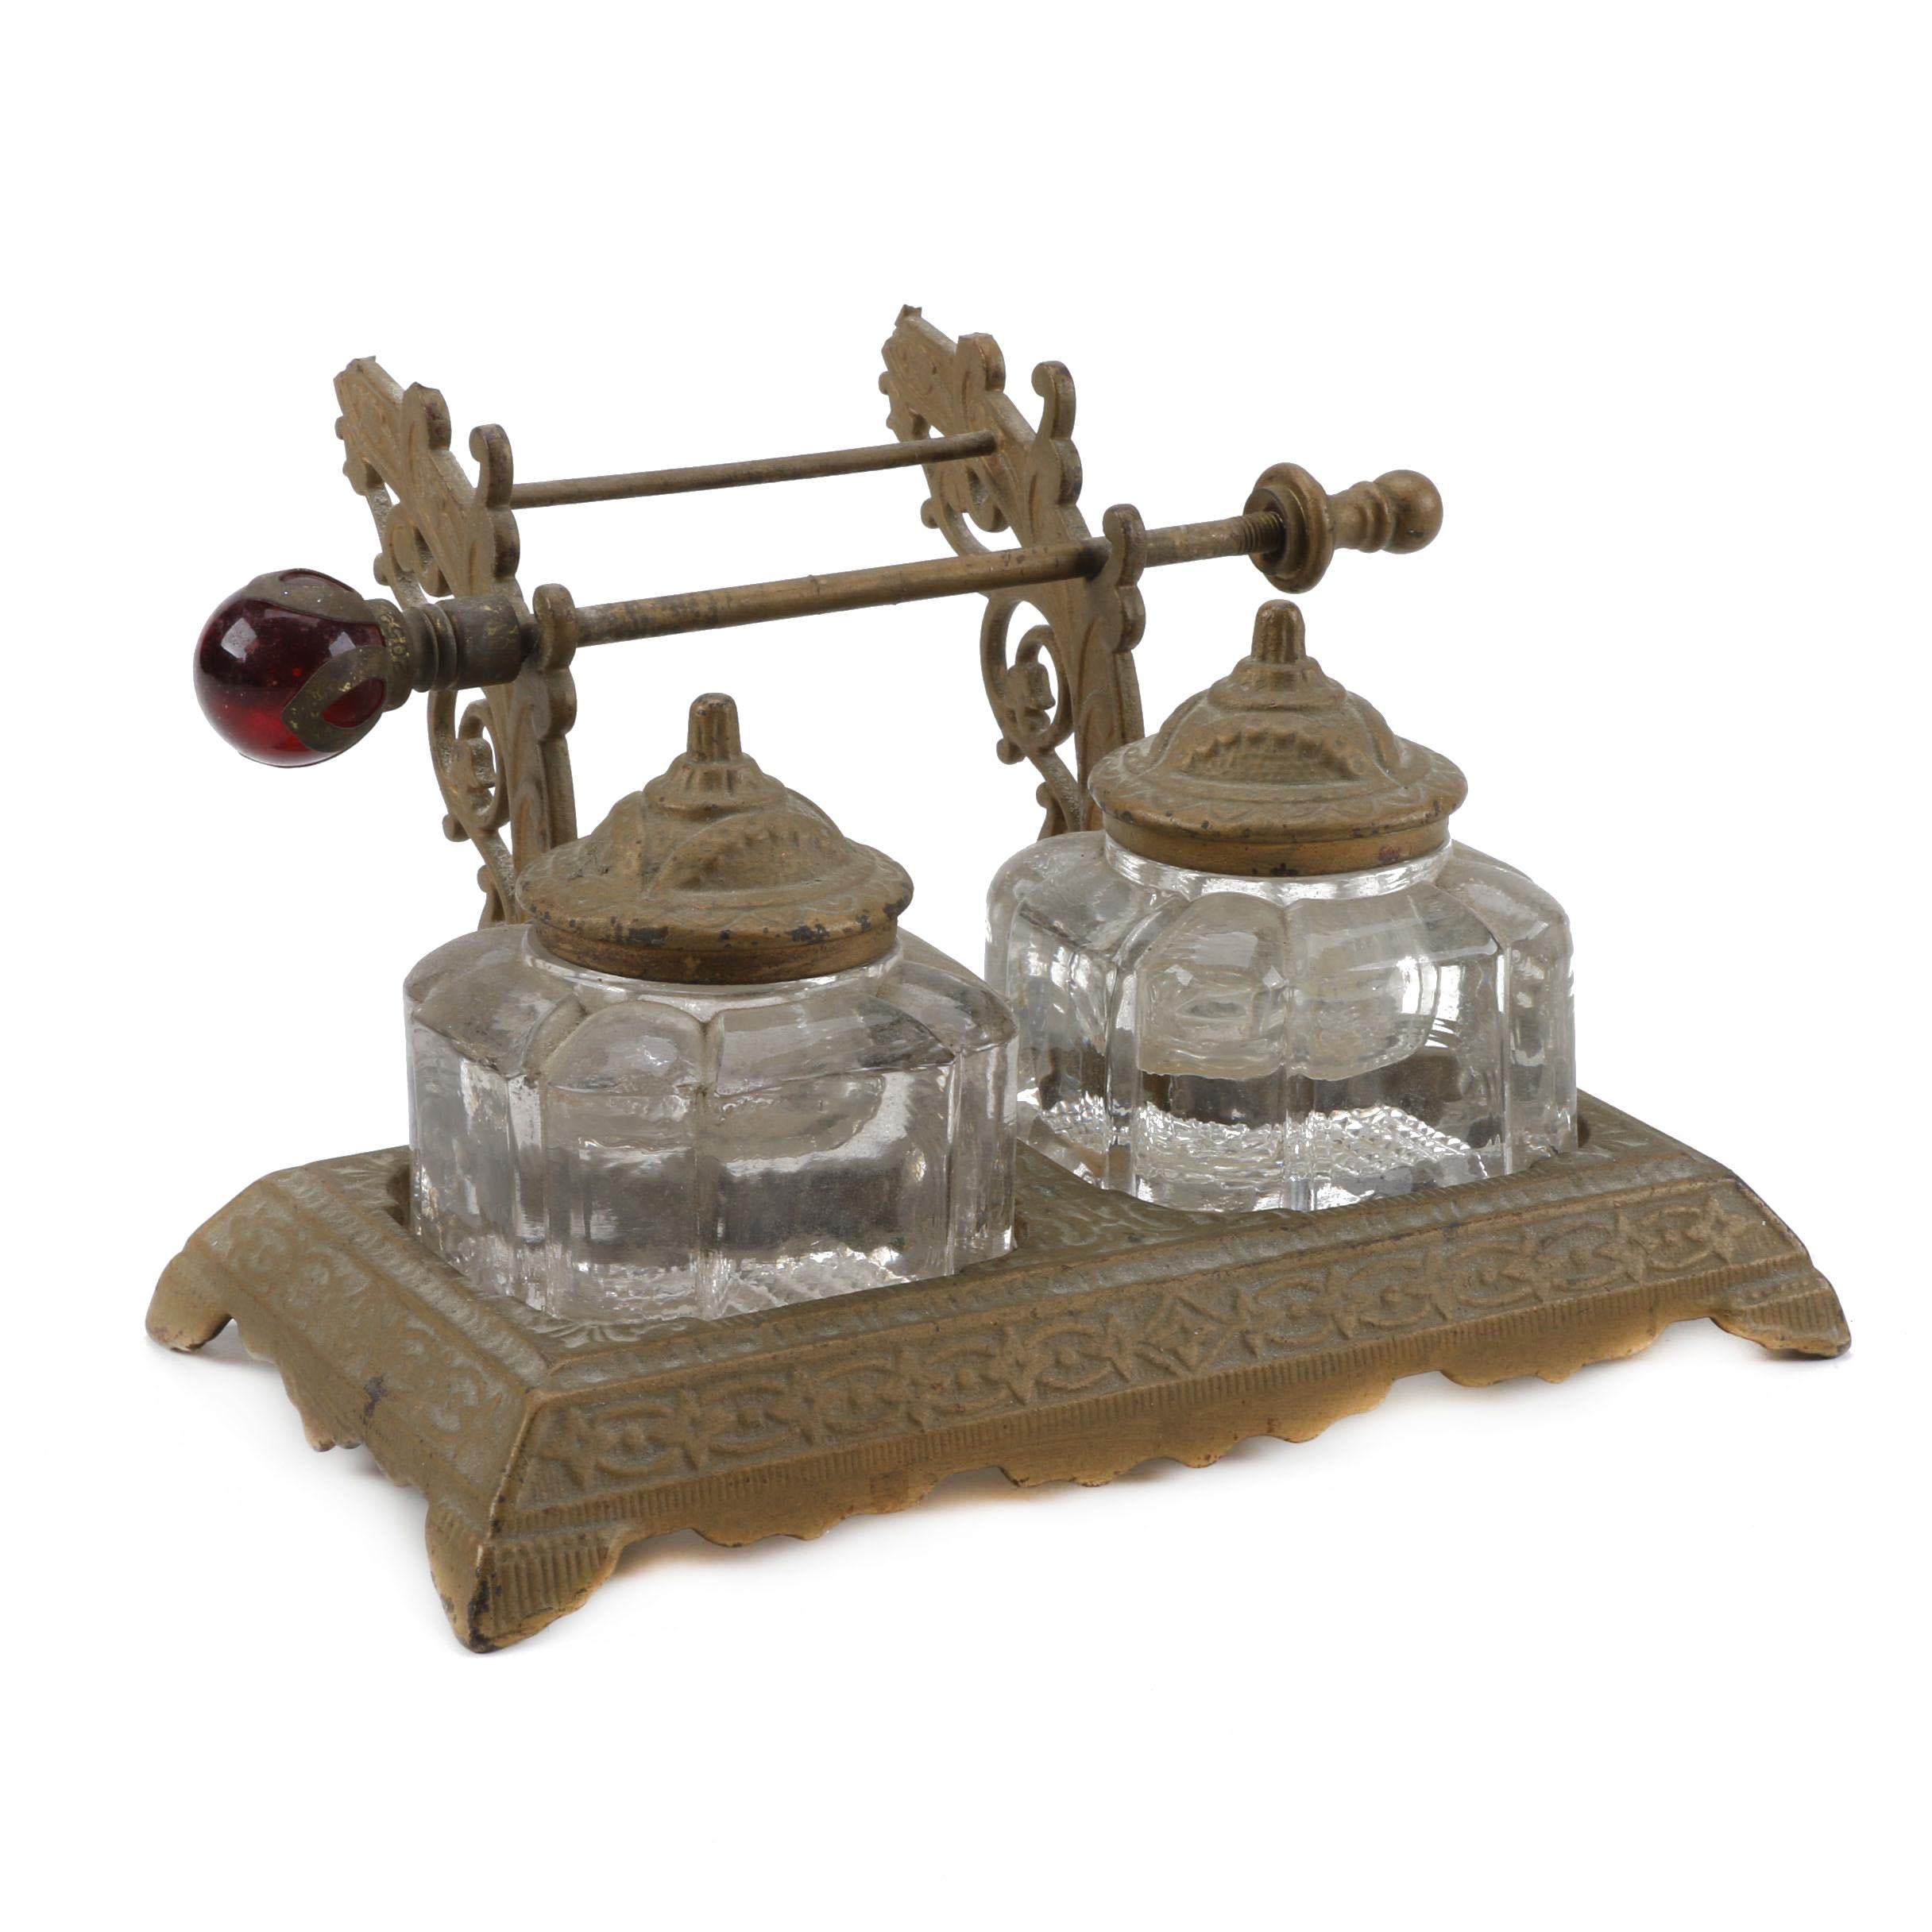 Antique Glass and Embossed Metal Inkwell Set